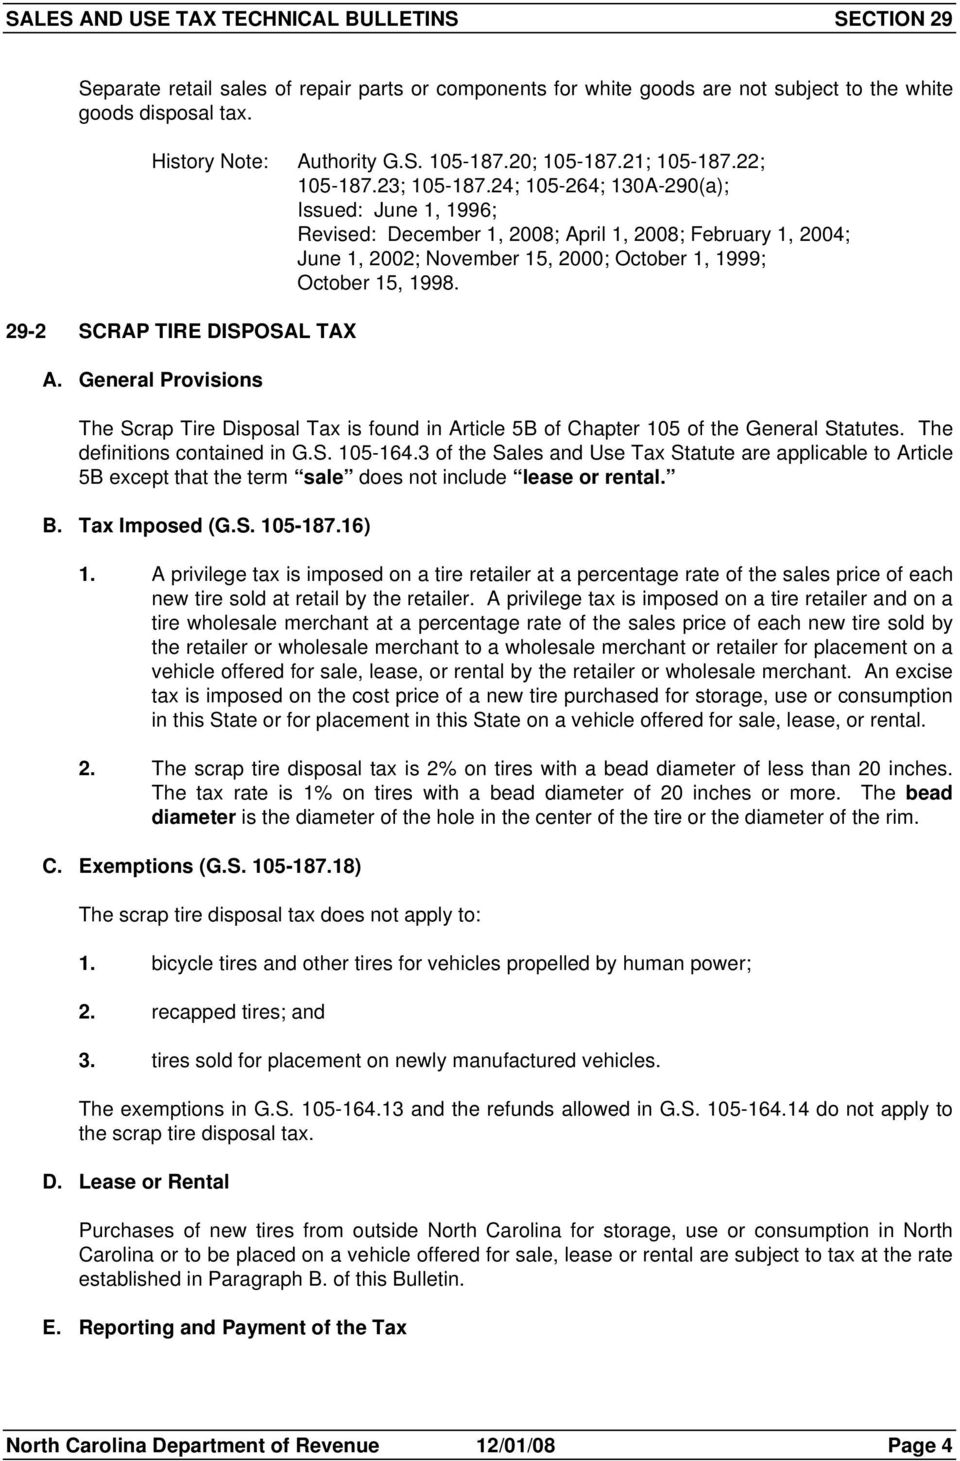 29-2 SCRAP TIRE DISPOSAL TAX A. General Provisions The Scrap Tire Disposal Tax is found in Article 5B of Chapter 105 of the General Statutes. The definitions contained in G.S. 105-164.